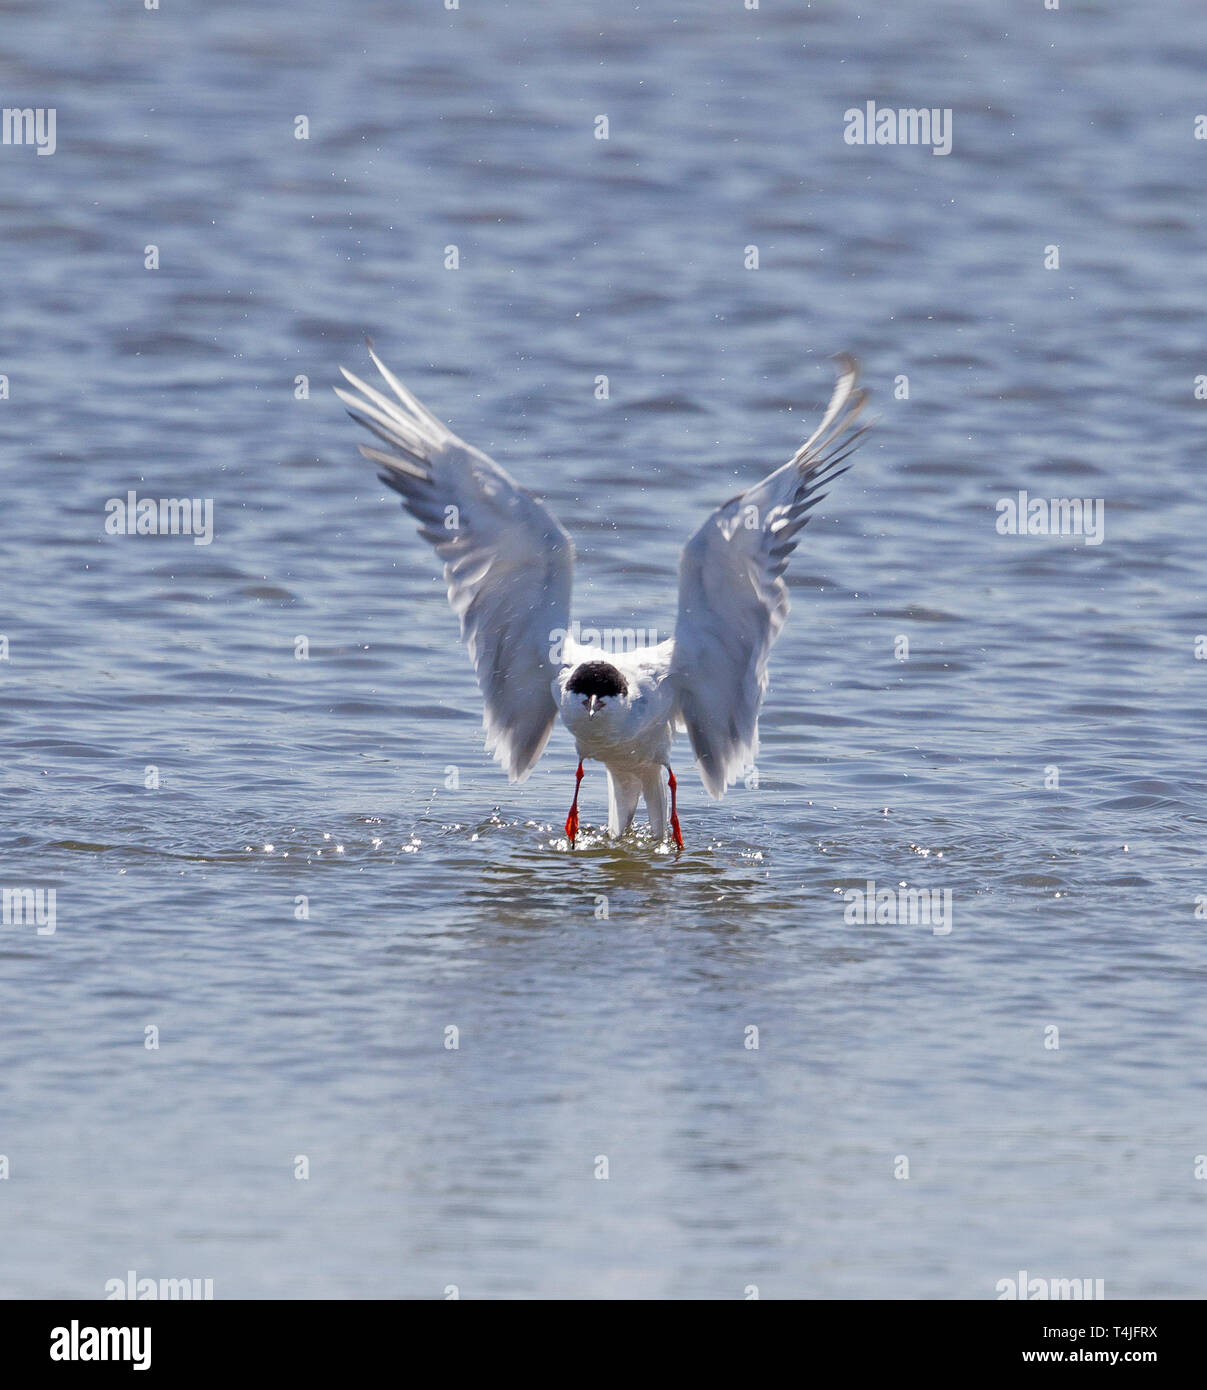 Forster's Tern Starting Takeoff after Diving - Stock Image